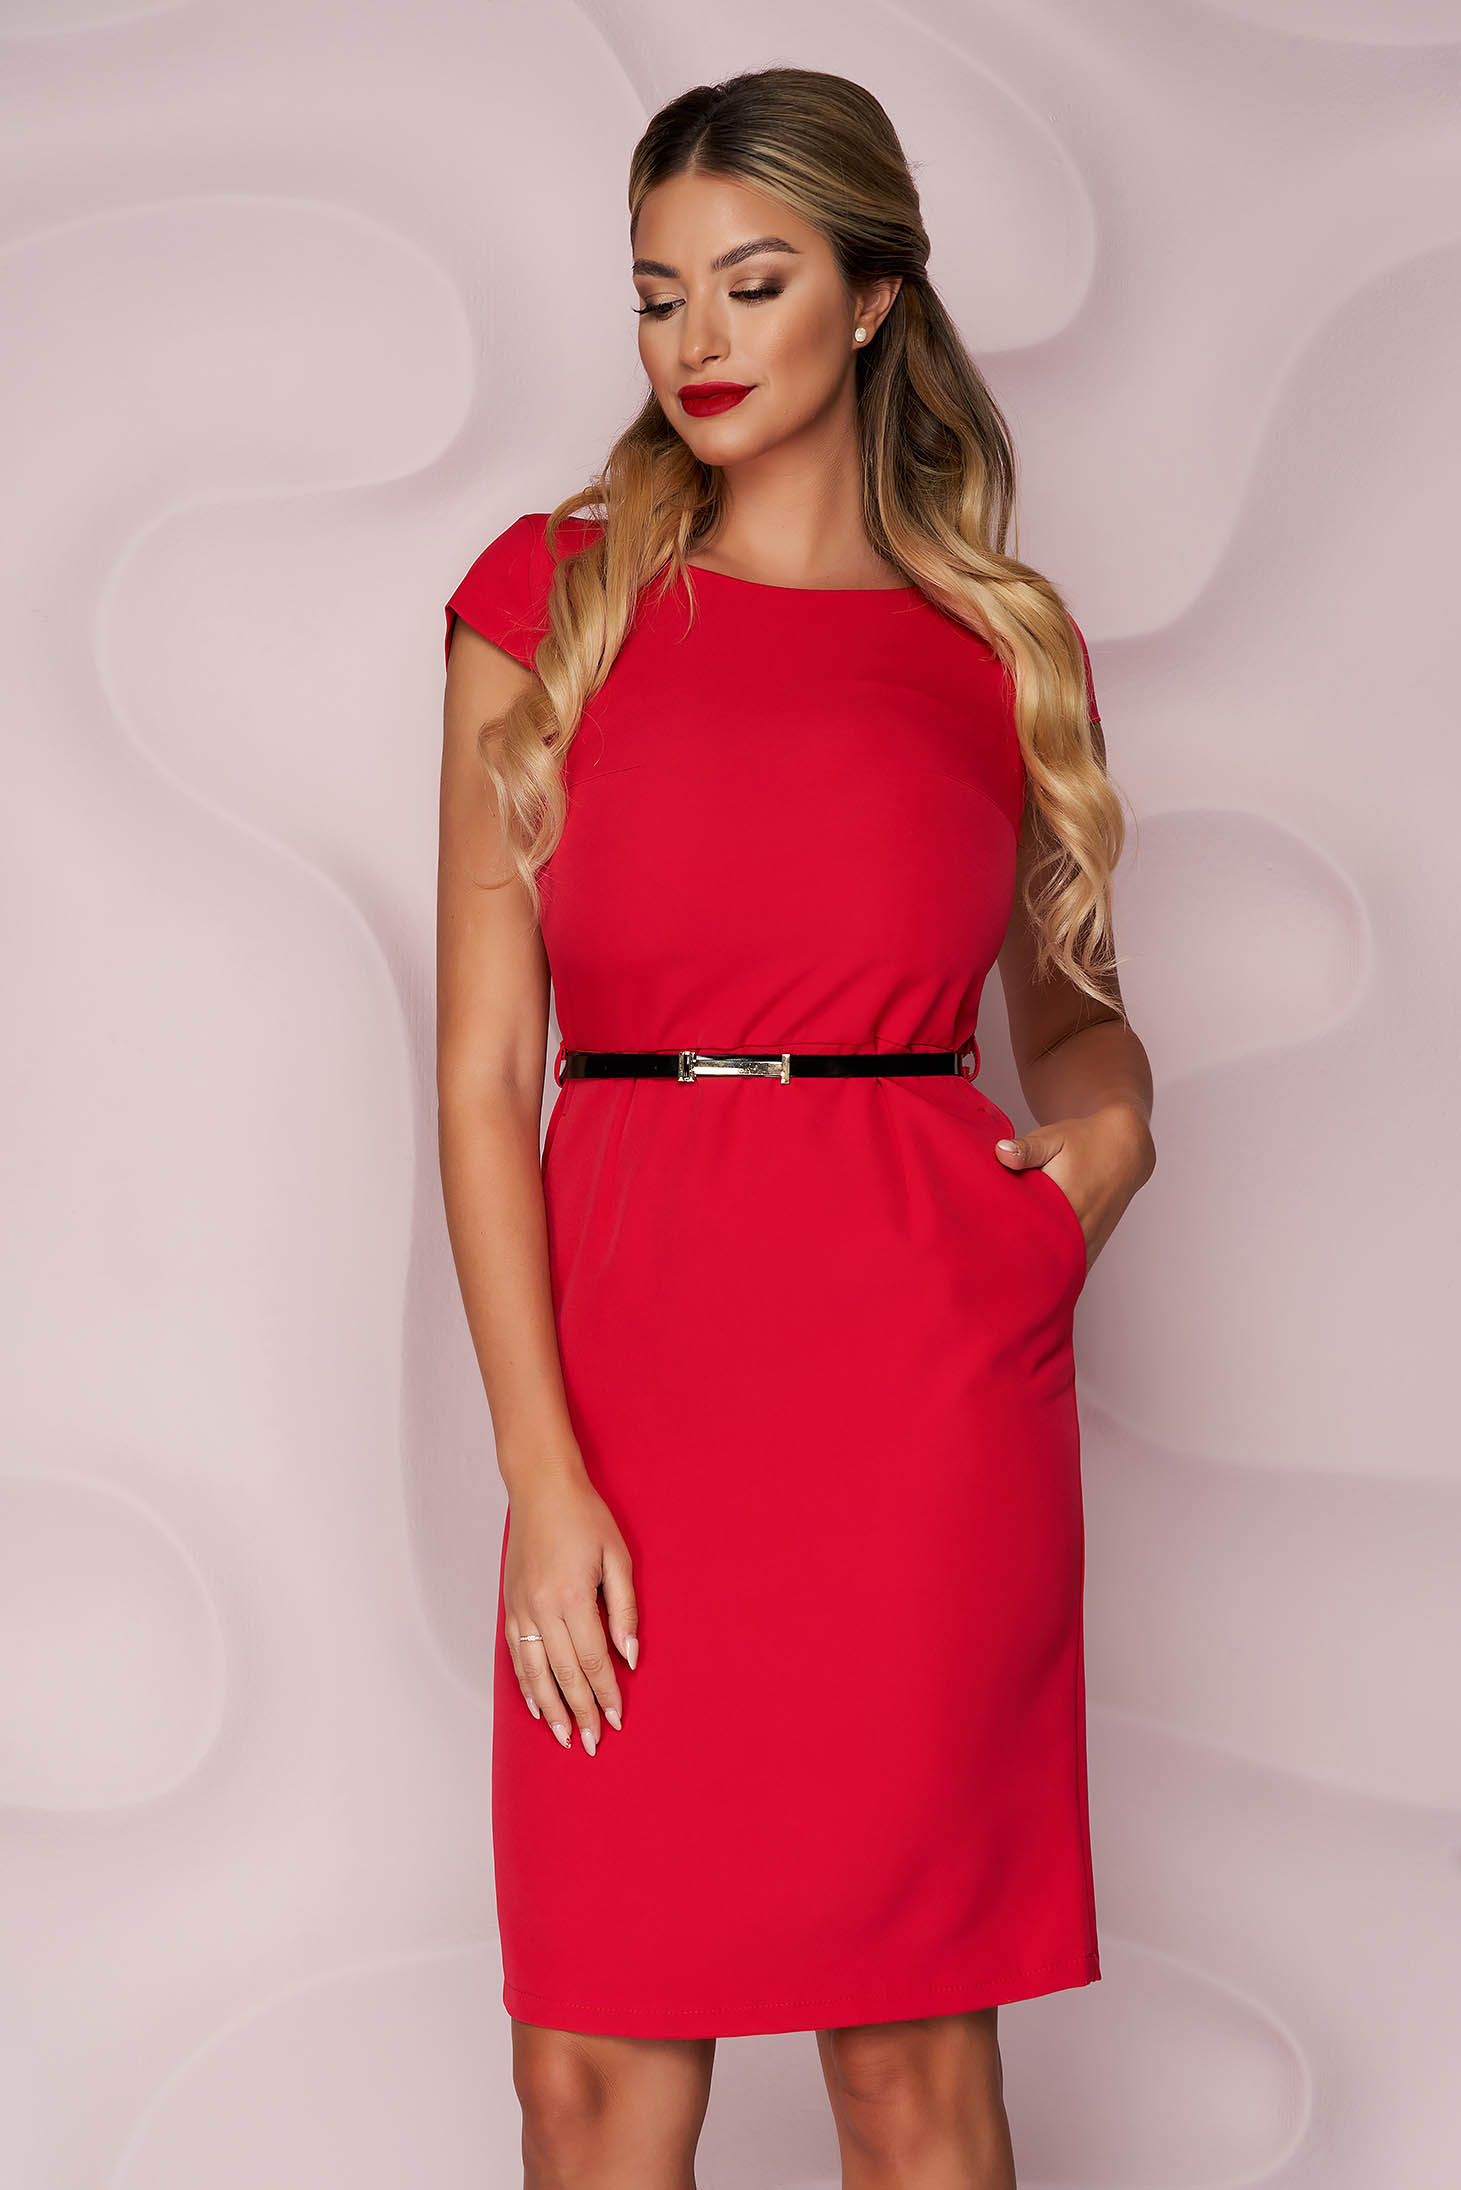 StarShinerS red dress office midi pencil cloth thin fabric nonelastic fabric accessorized with belt